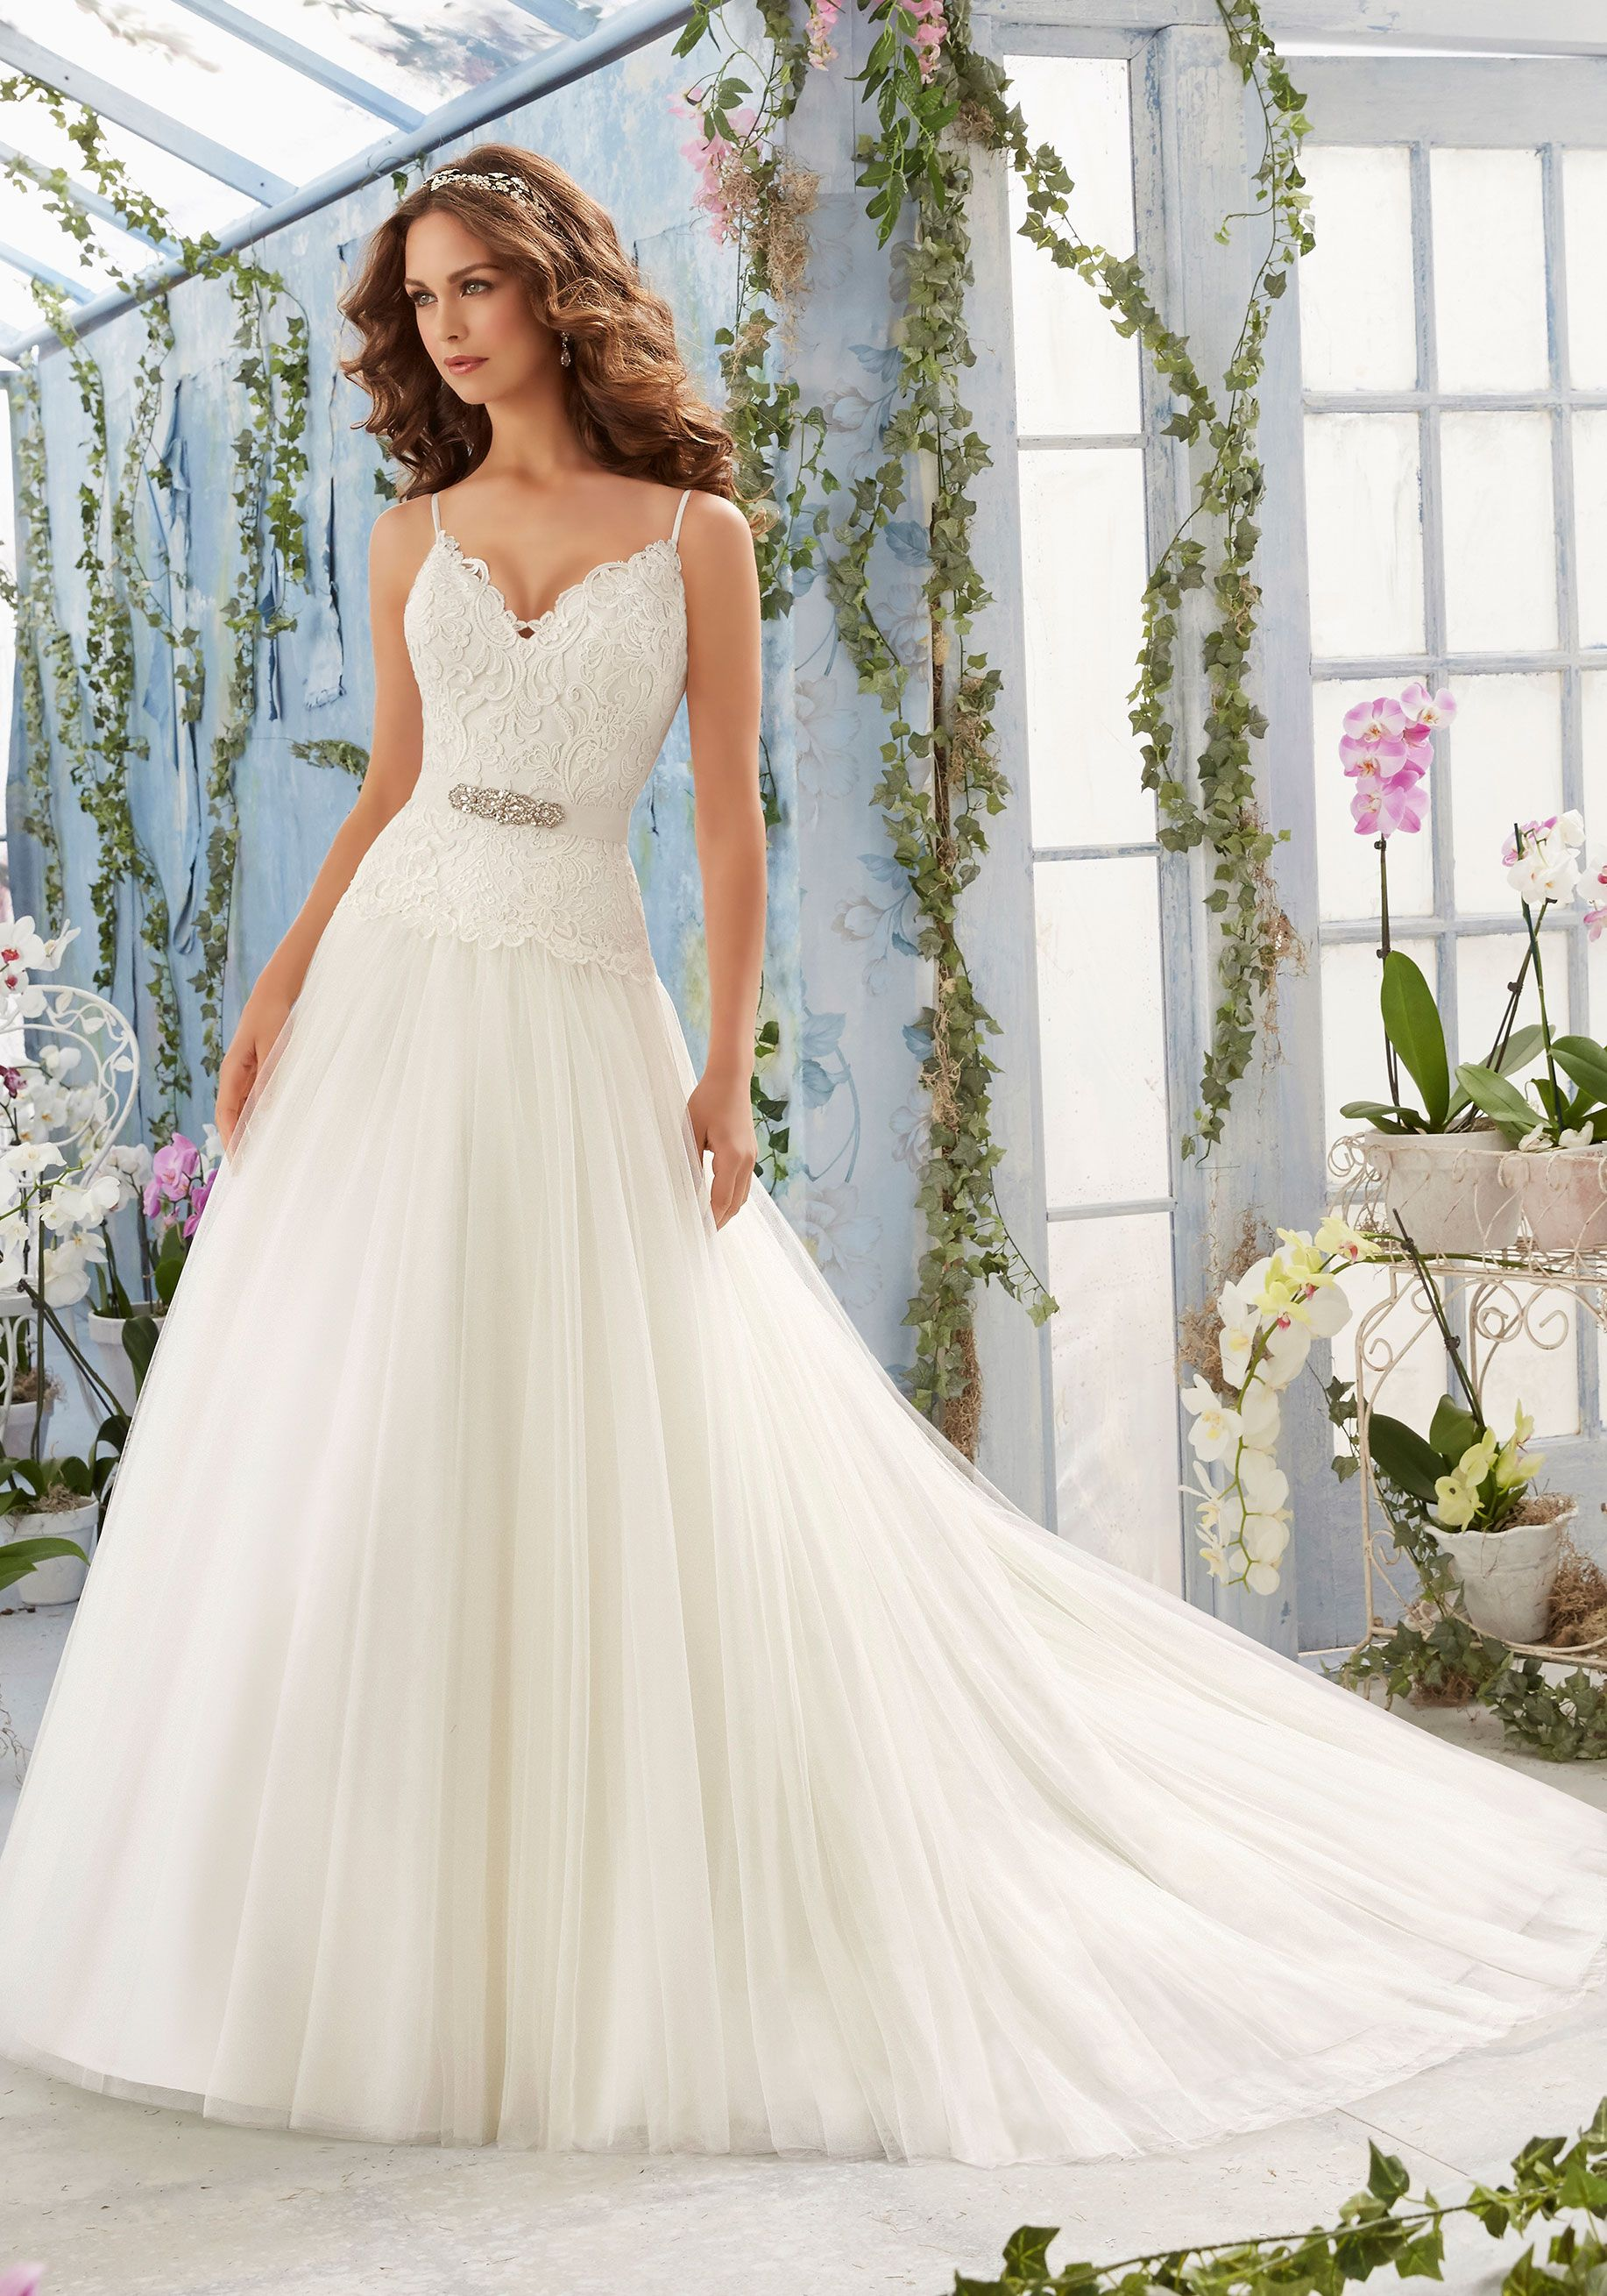 Removable beaded organza tie sash included but also the tie sash is